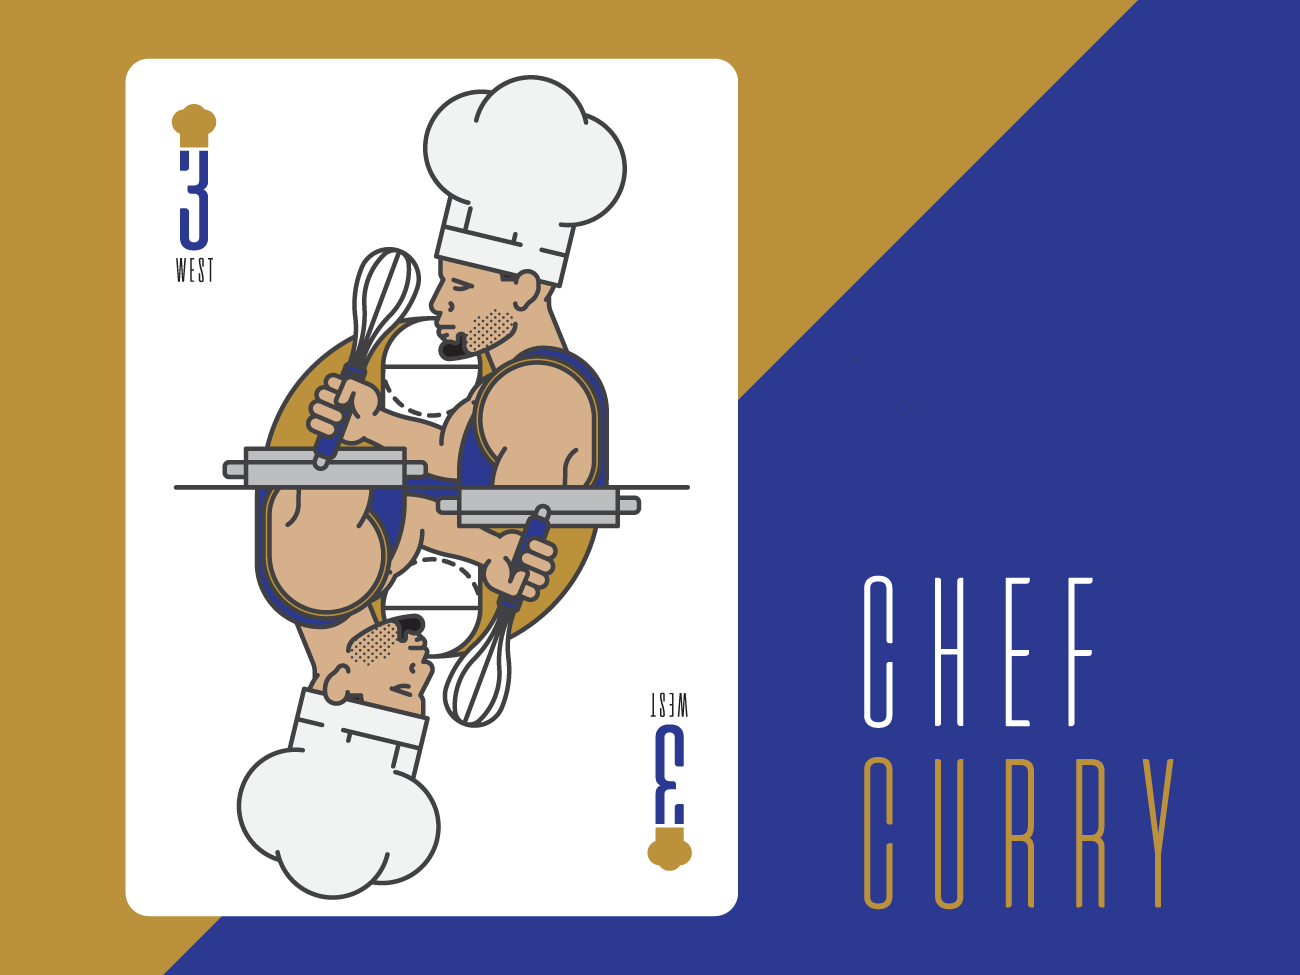 card-chef-curry-soloV01.png